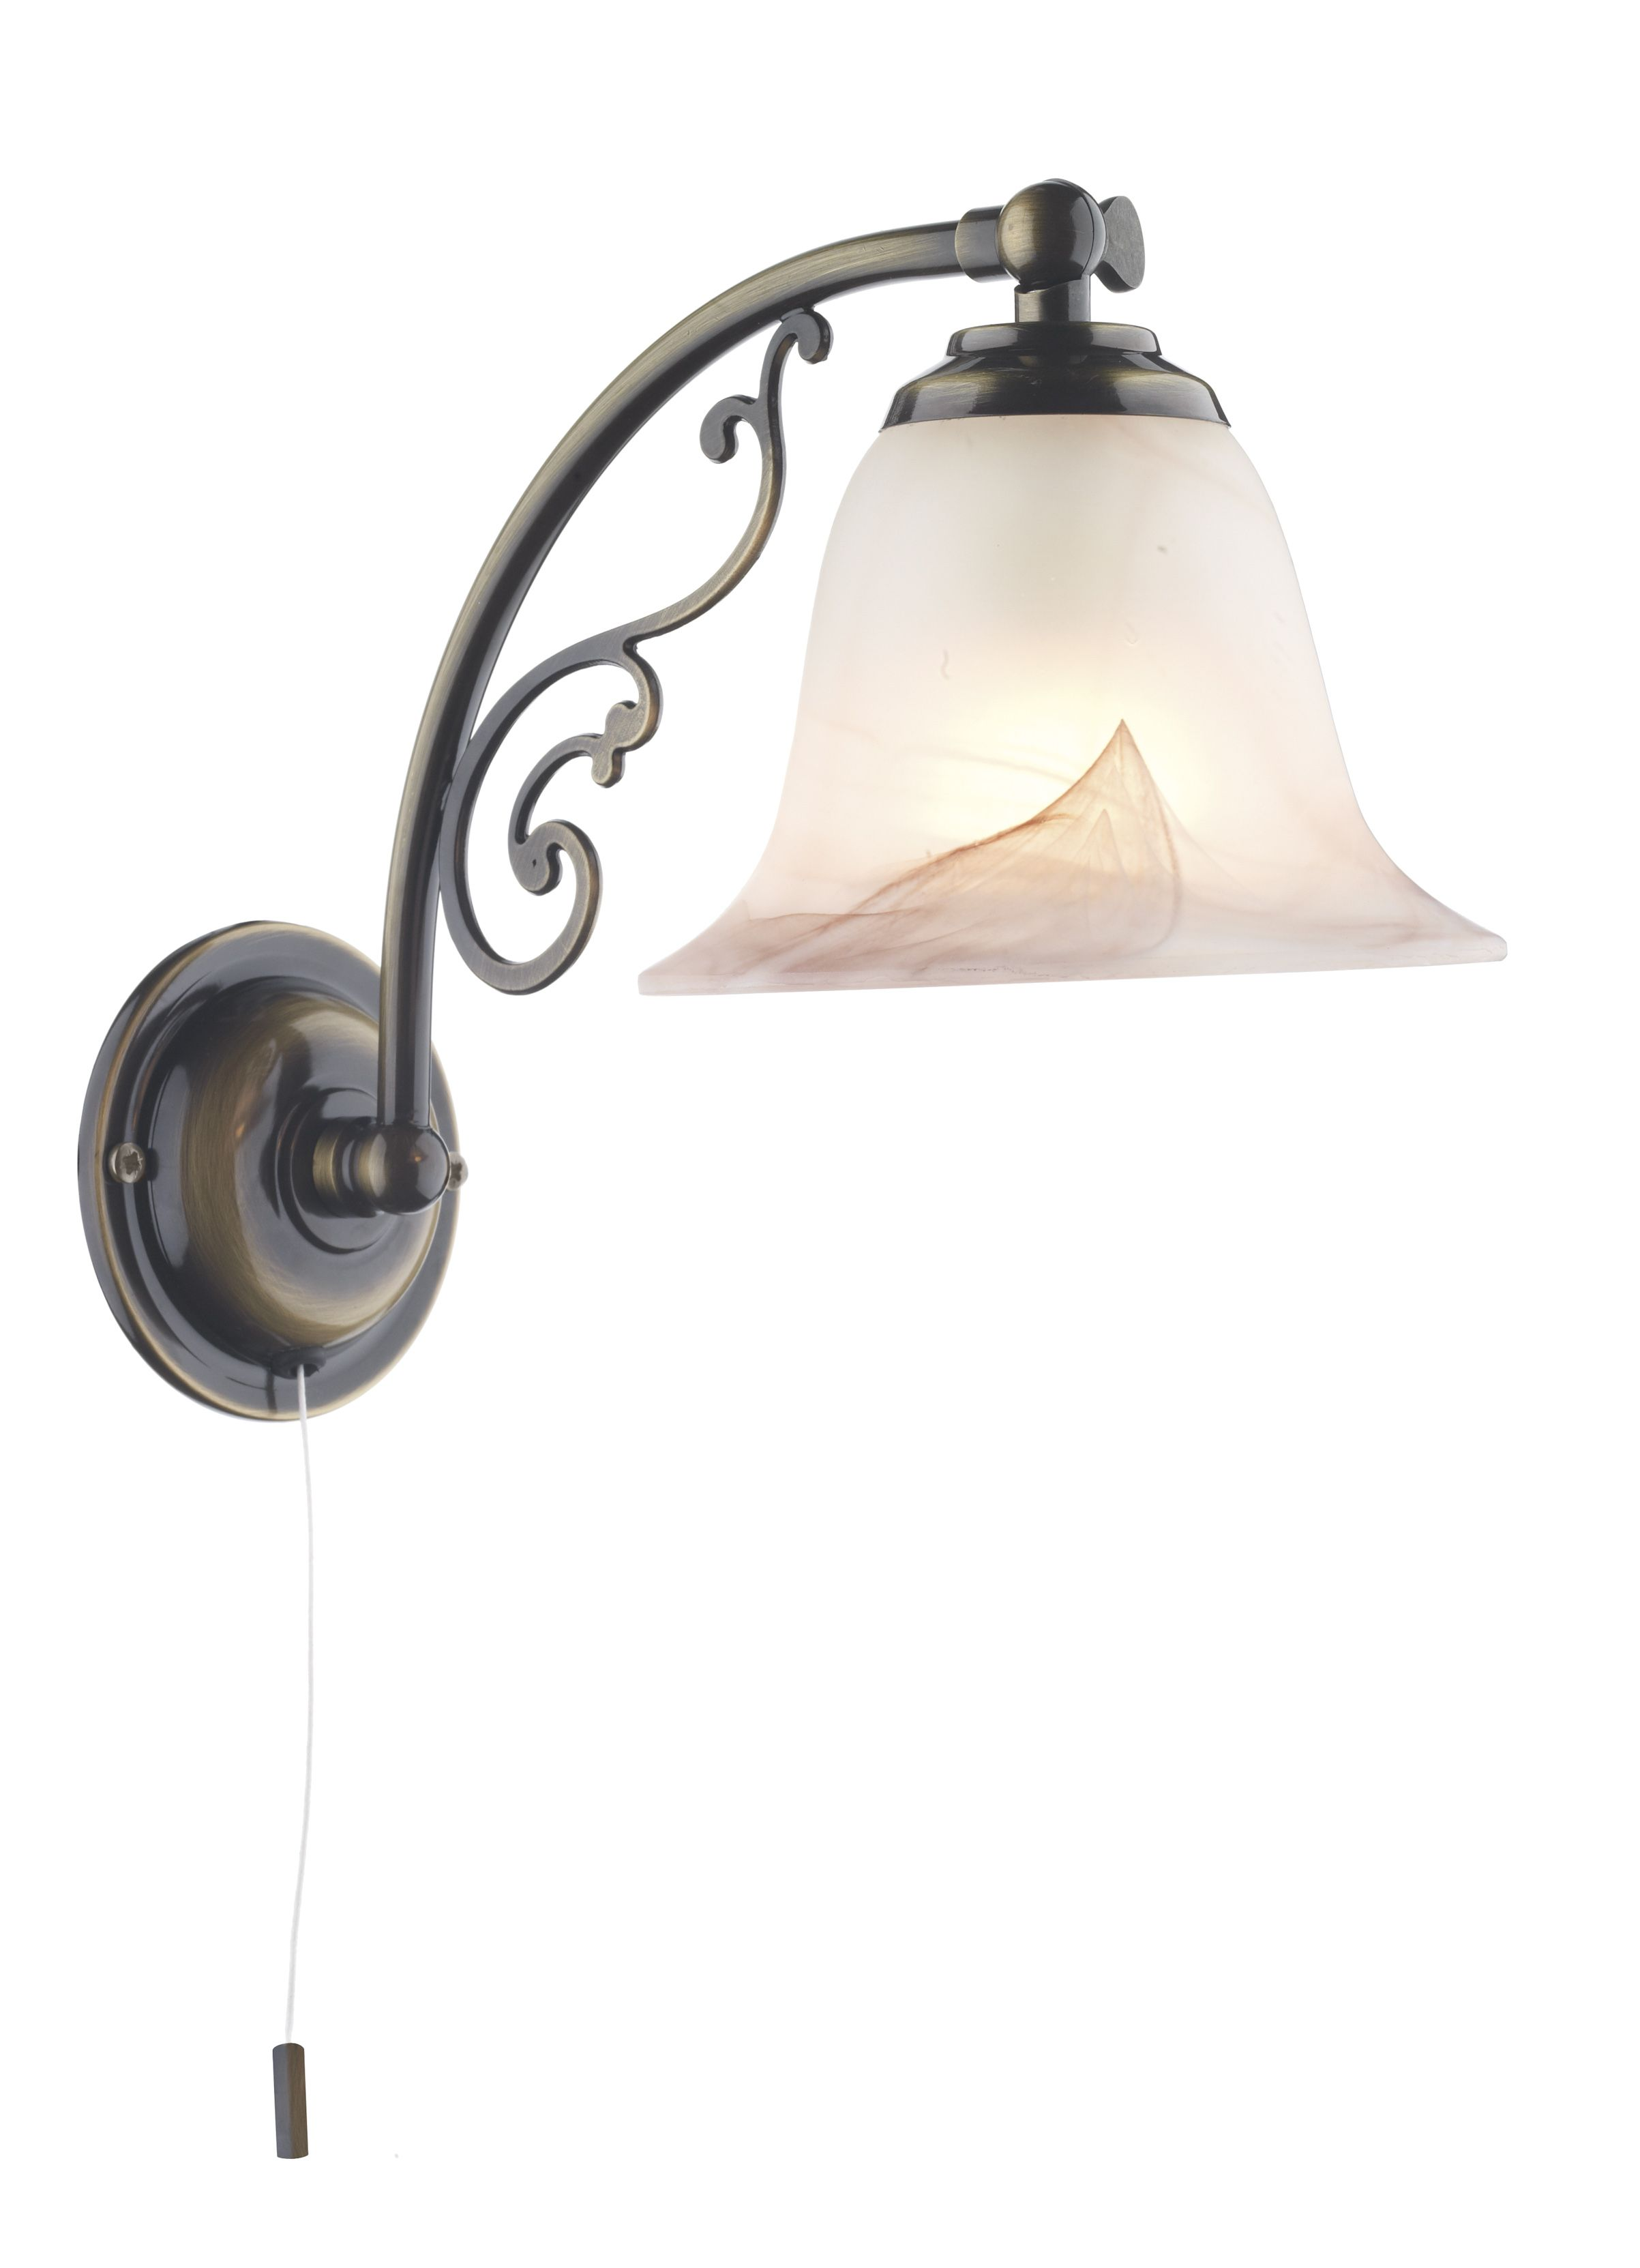 Wall Lamps At Target : wall lamps with cord target with decorative up/down wall lamp with classic brass design ...